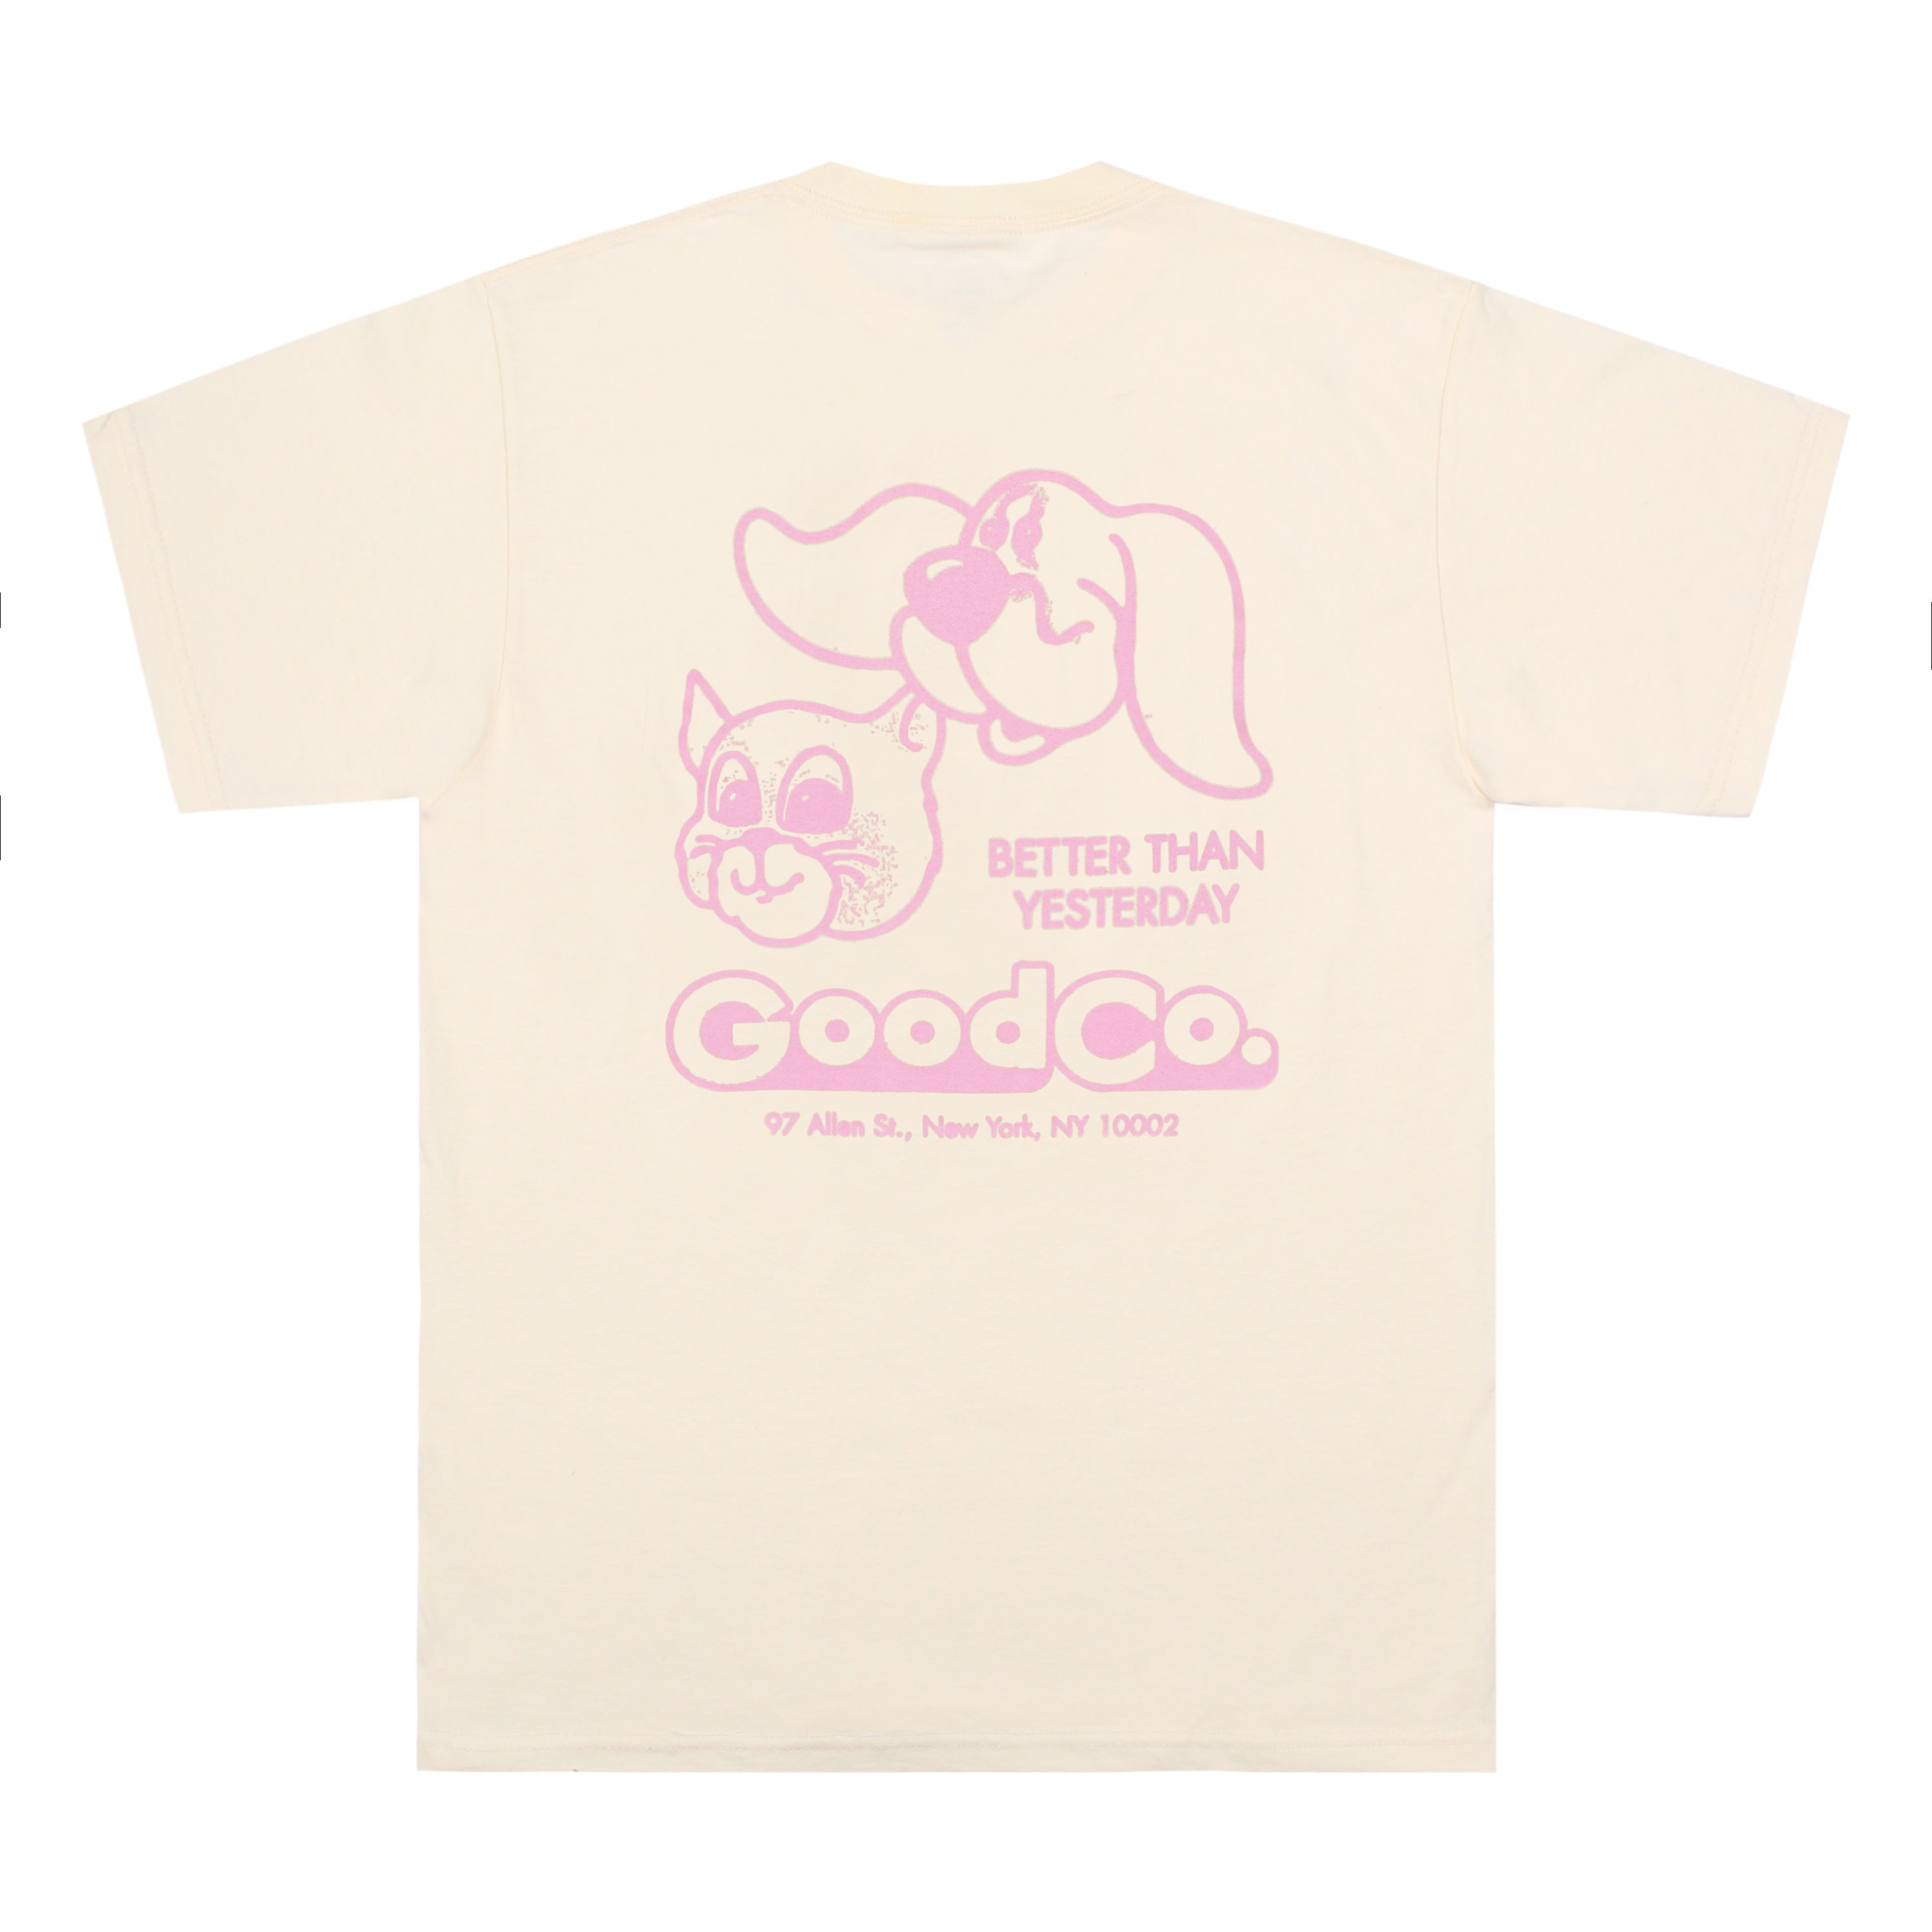 The Good Company - The Good Co - Friends Tee - Cream